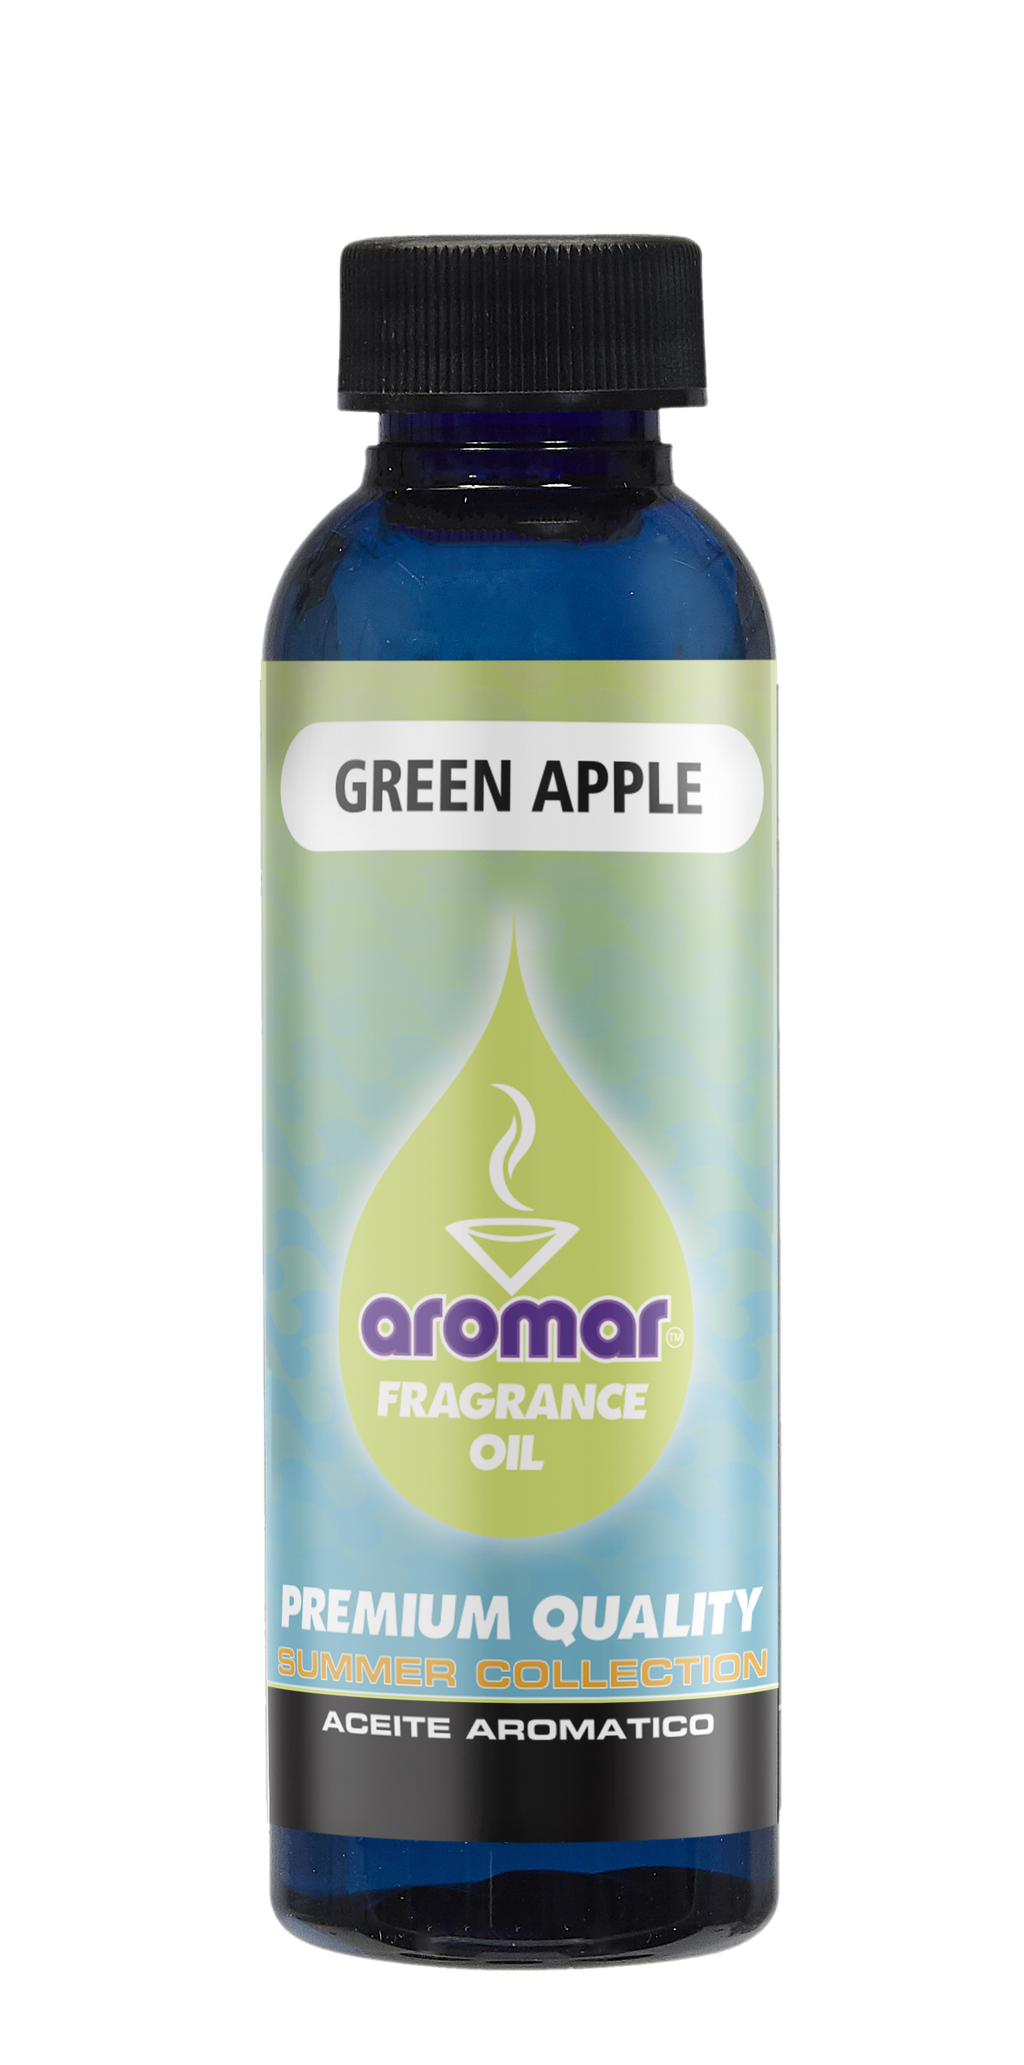 Green Apple Fragrance Oil